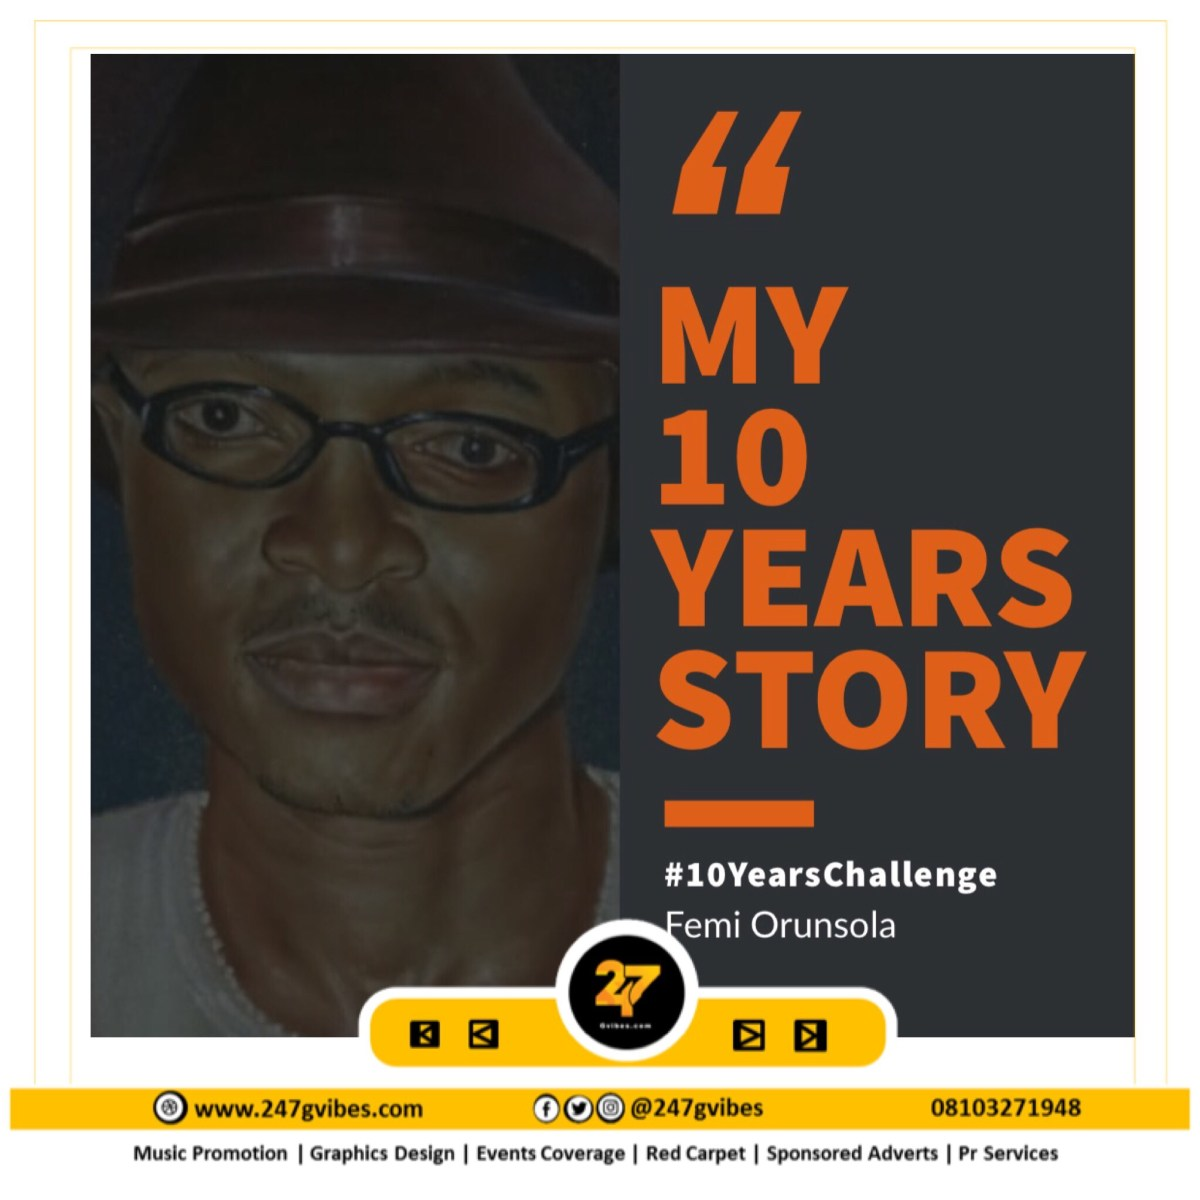 Article: Mapoly Lecturer Femi Orunsola Shares His 10 Years Story #10YearsChallenge | @OmobaOrun_98662